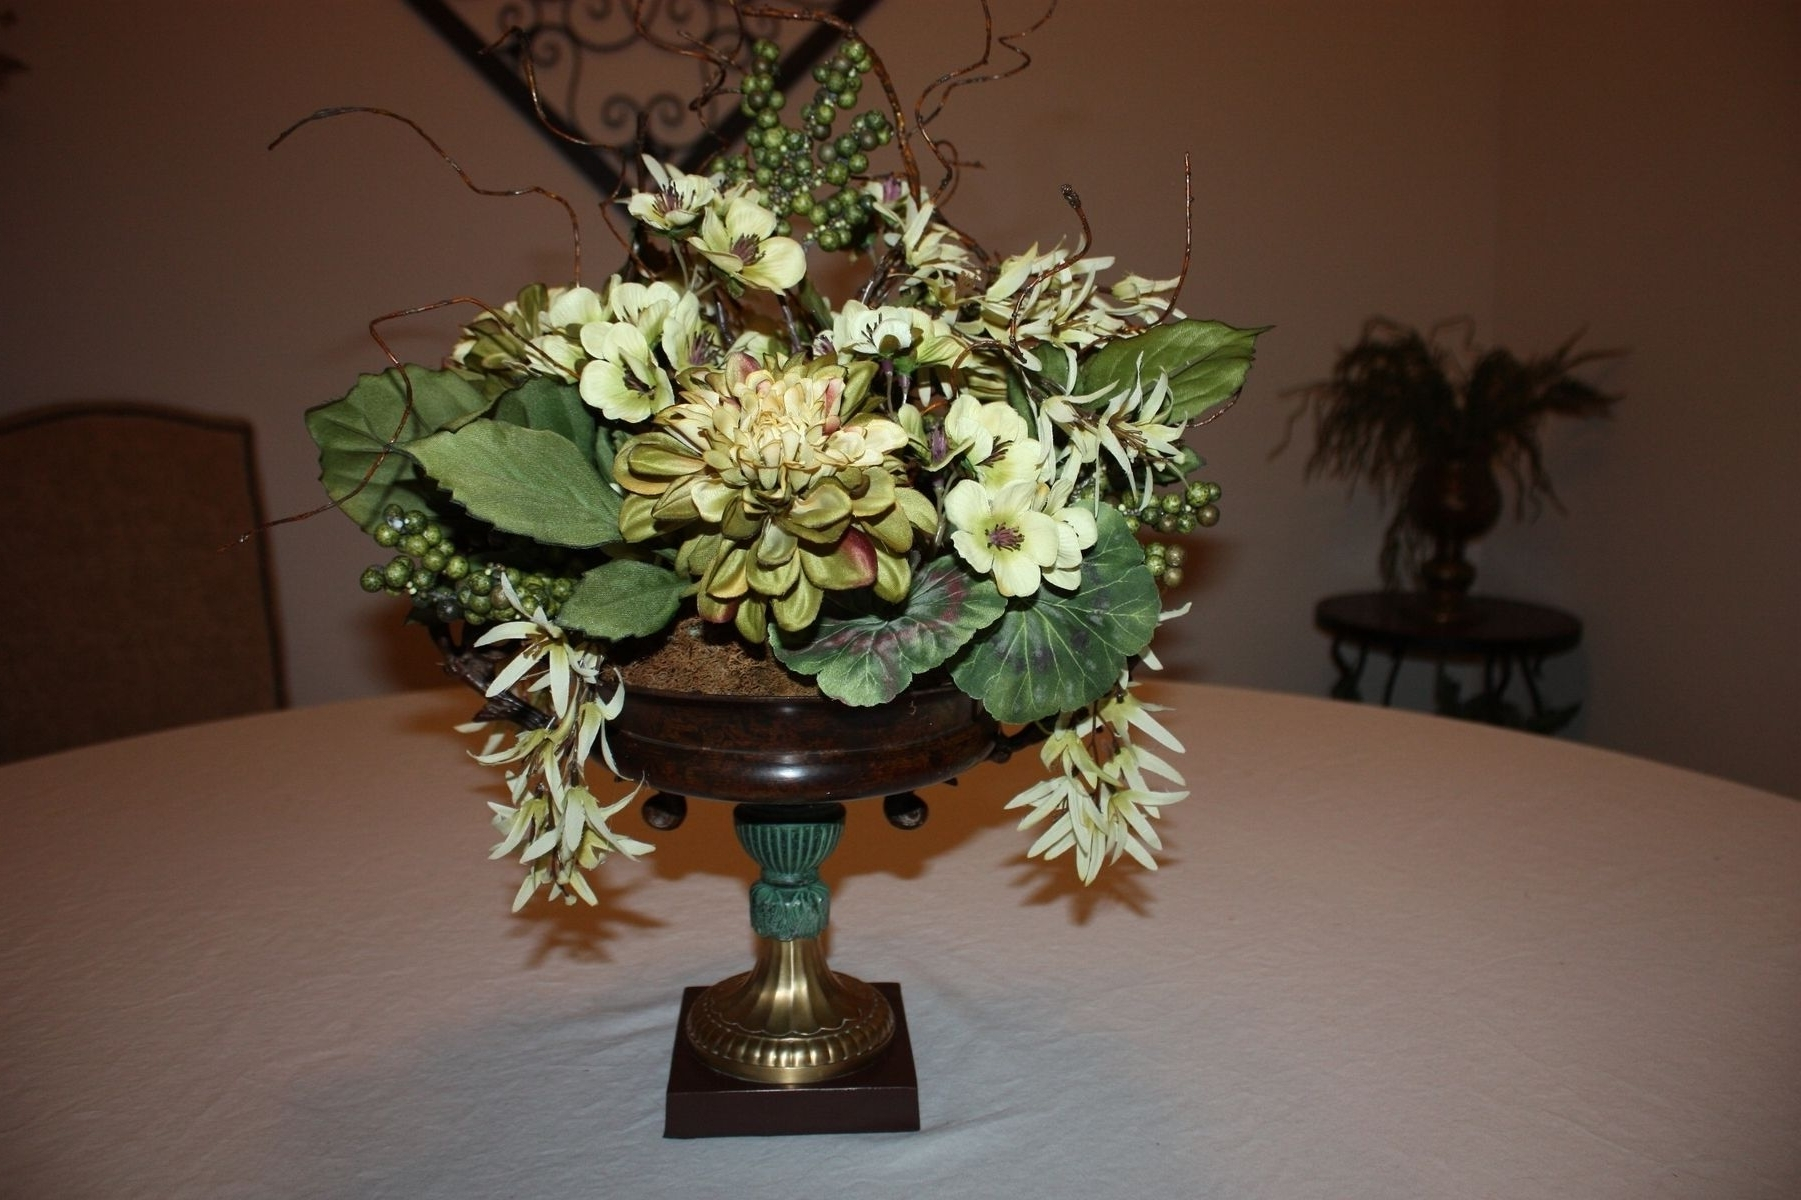 Artificial Floral Arrangements For Dining Tables Throughout Latest Hand Made Dining Table Centerpiece Silk Flower Arrangement, Home (Gallery 5 of 25)